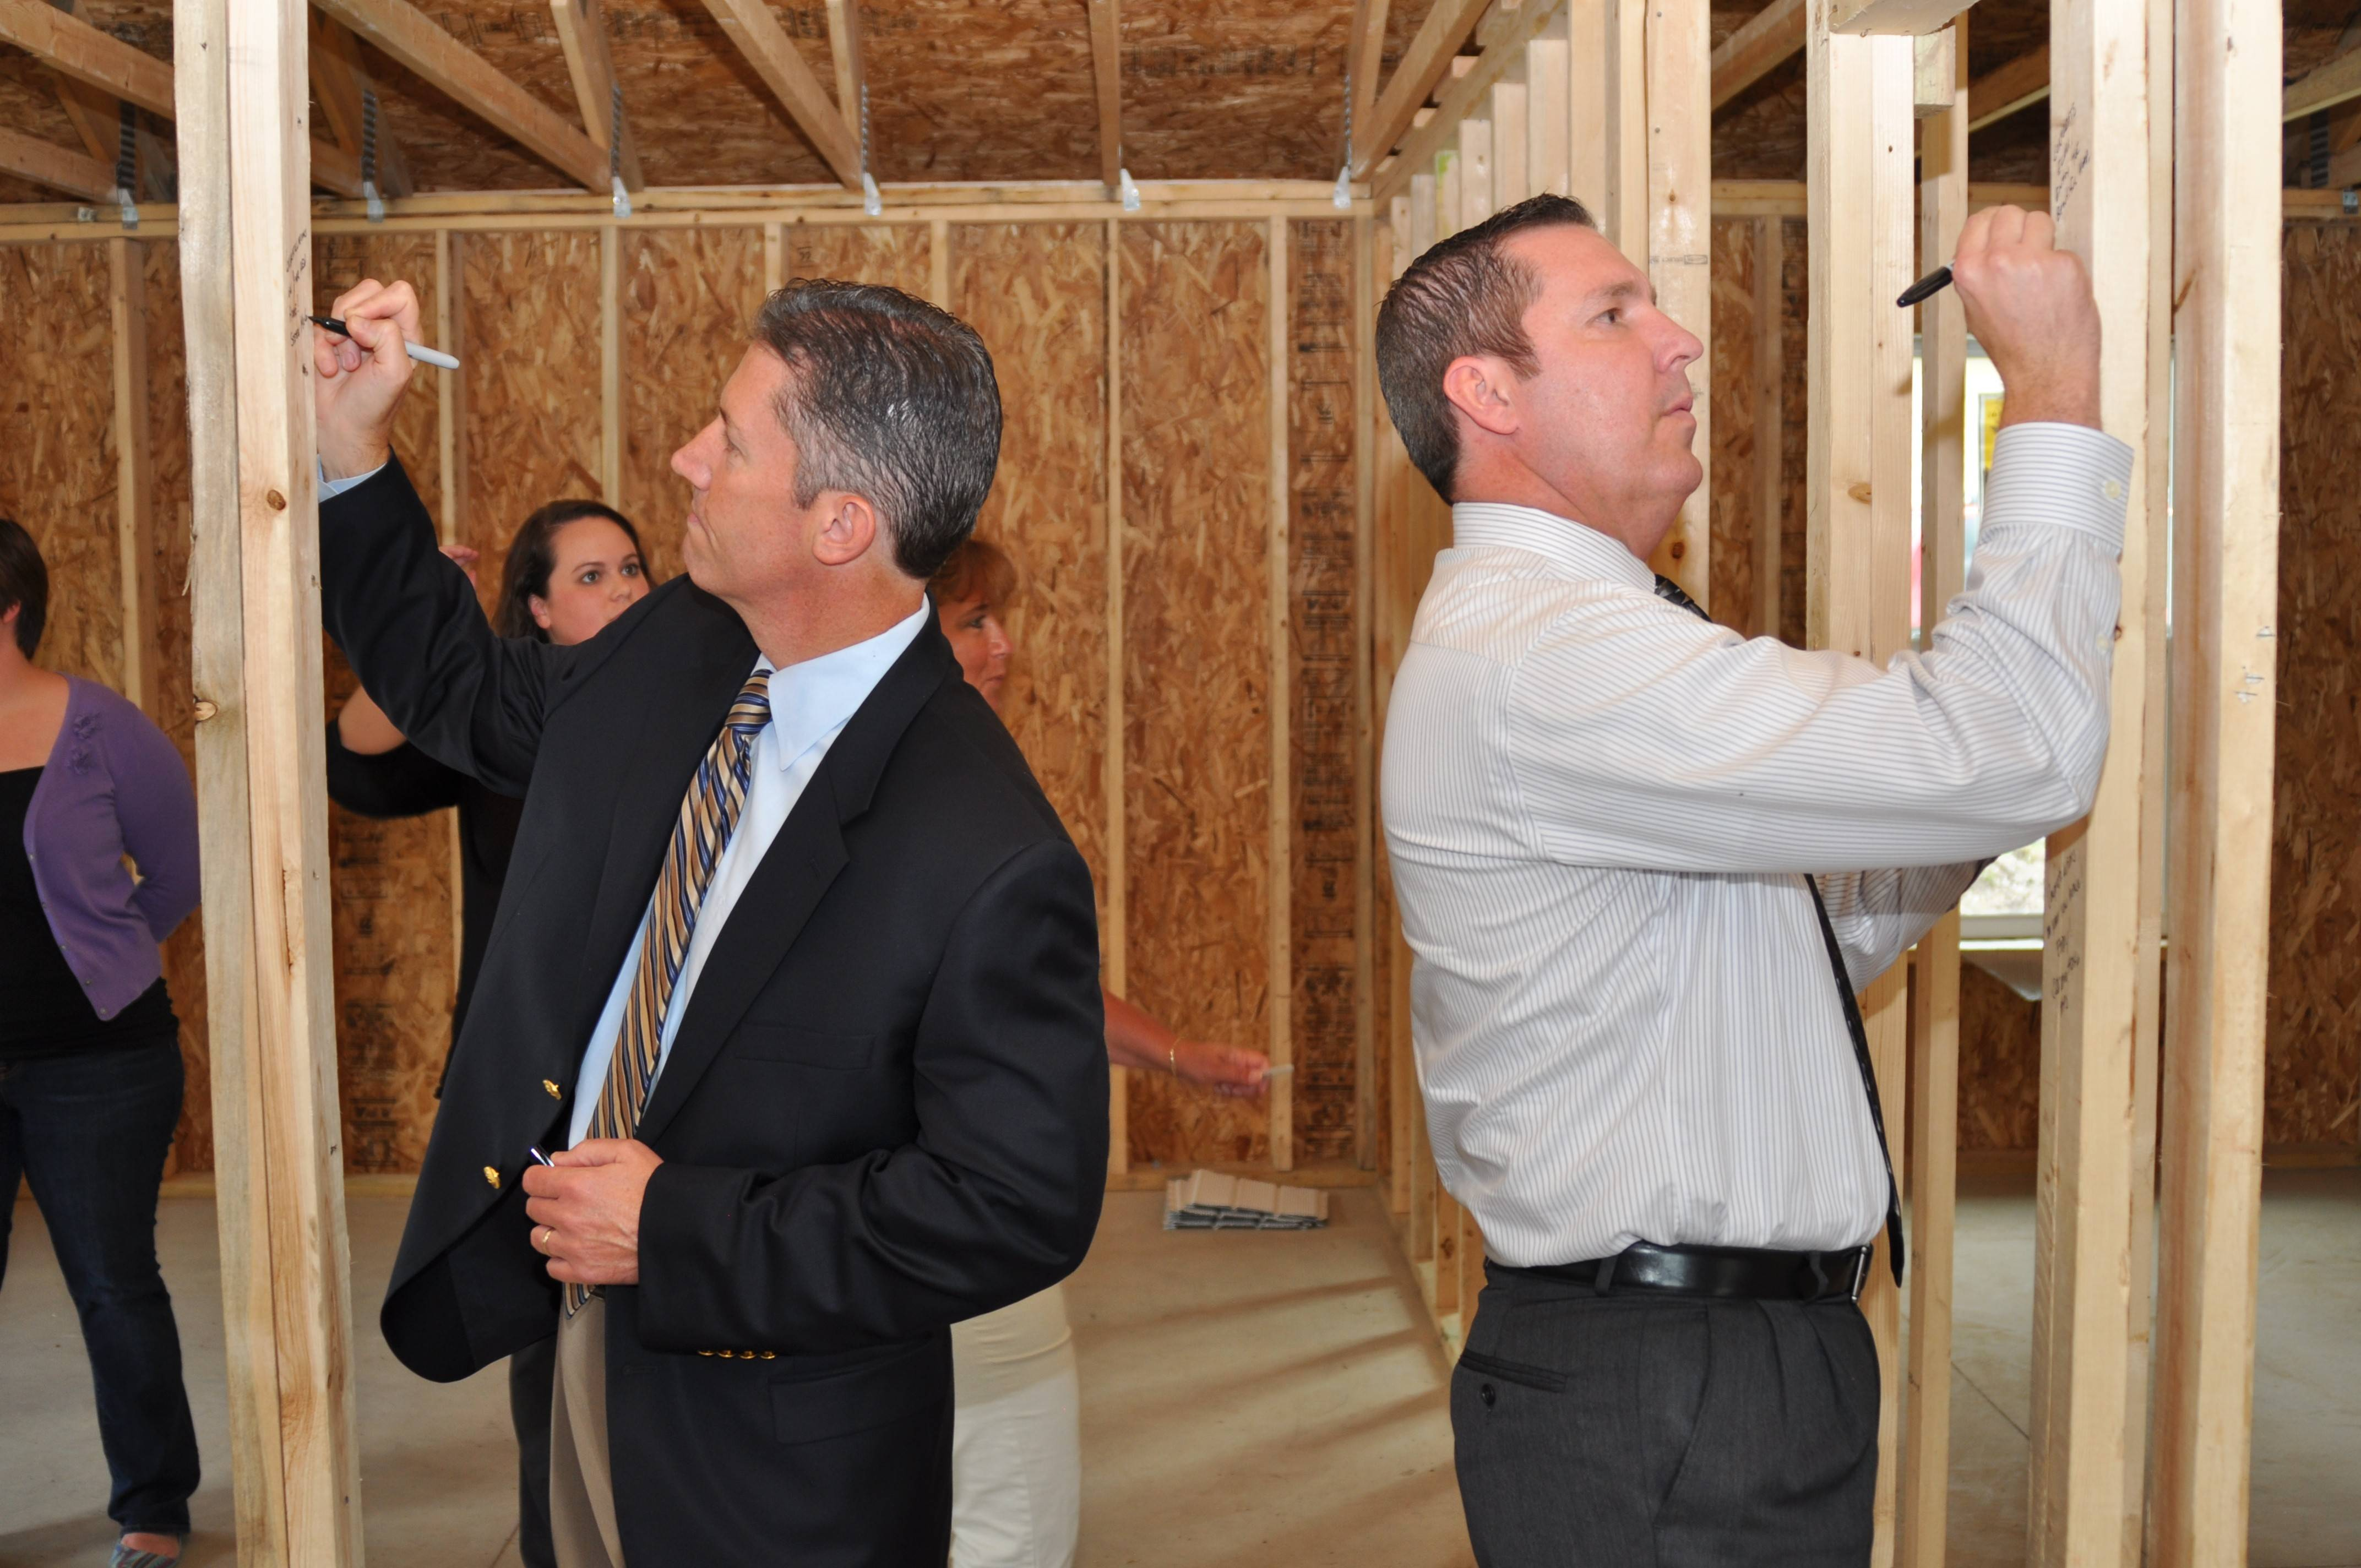 Geneva's Steve McCormick, left, and Dave McCormick of Batavia autographed timbers at a new Fox Valley Habitat for Humanity home in Aurora.